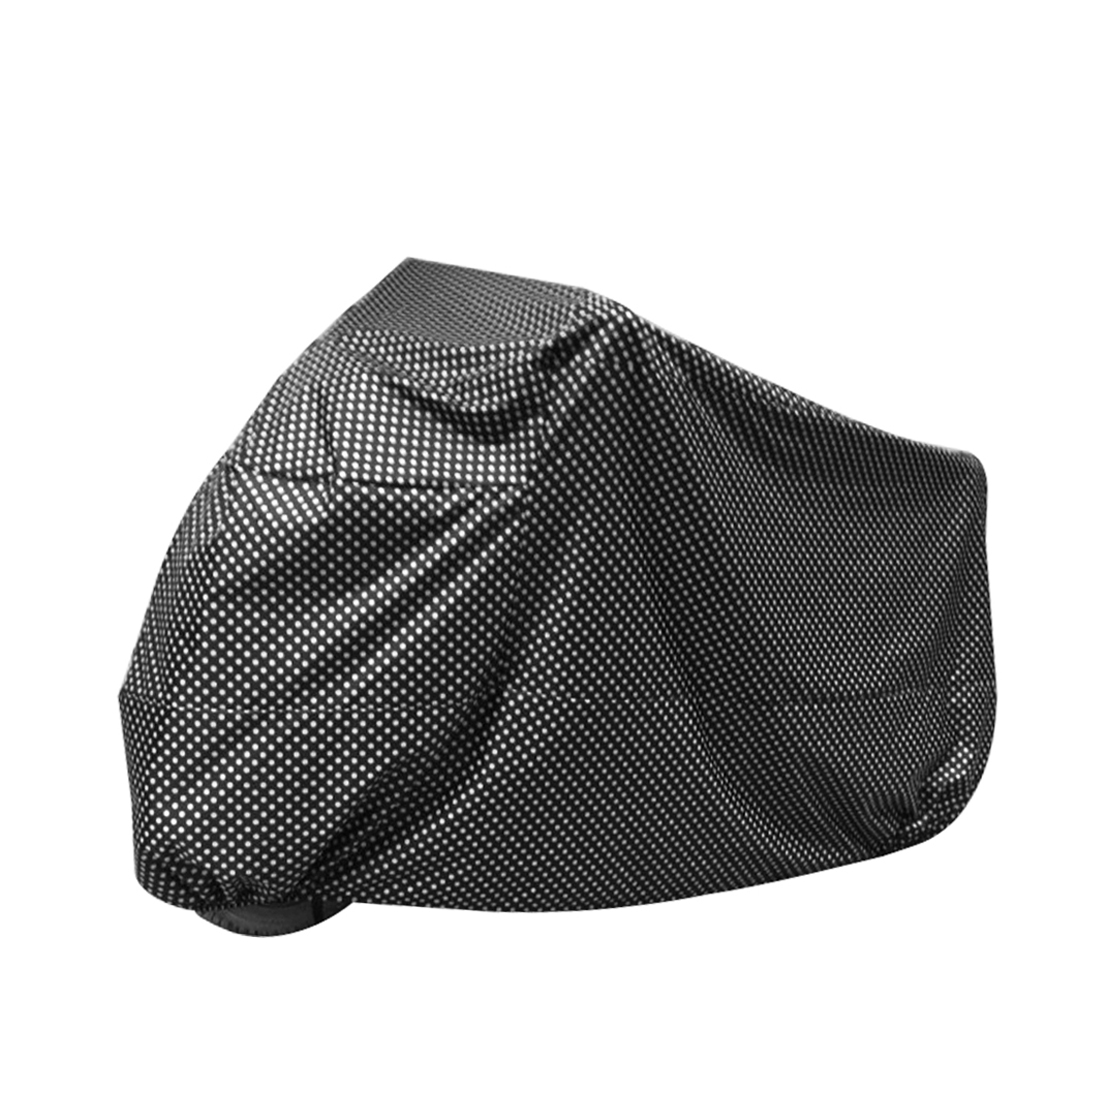 XL 180T Rain Dust Motorcycle Cover Black Dotted Outdoor Waterproof UV Protector